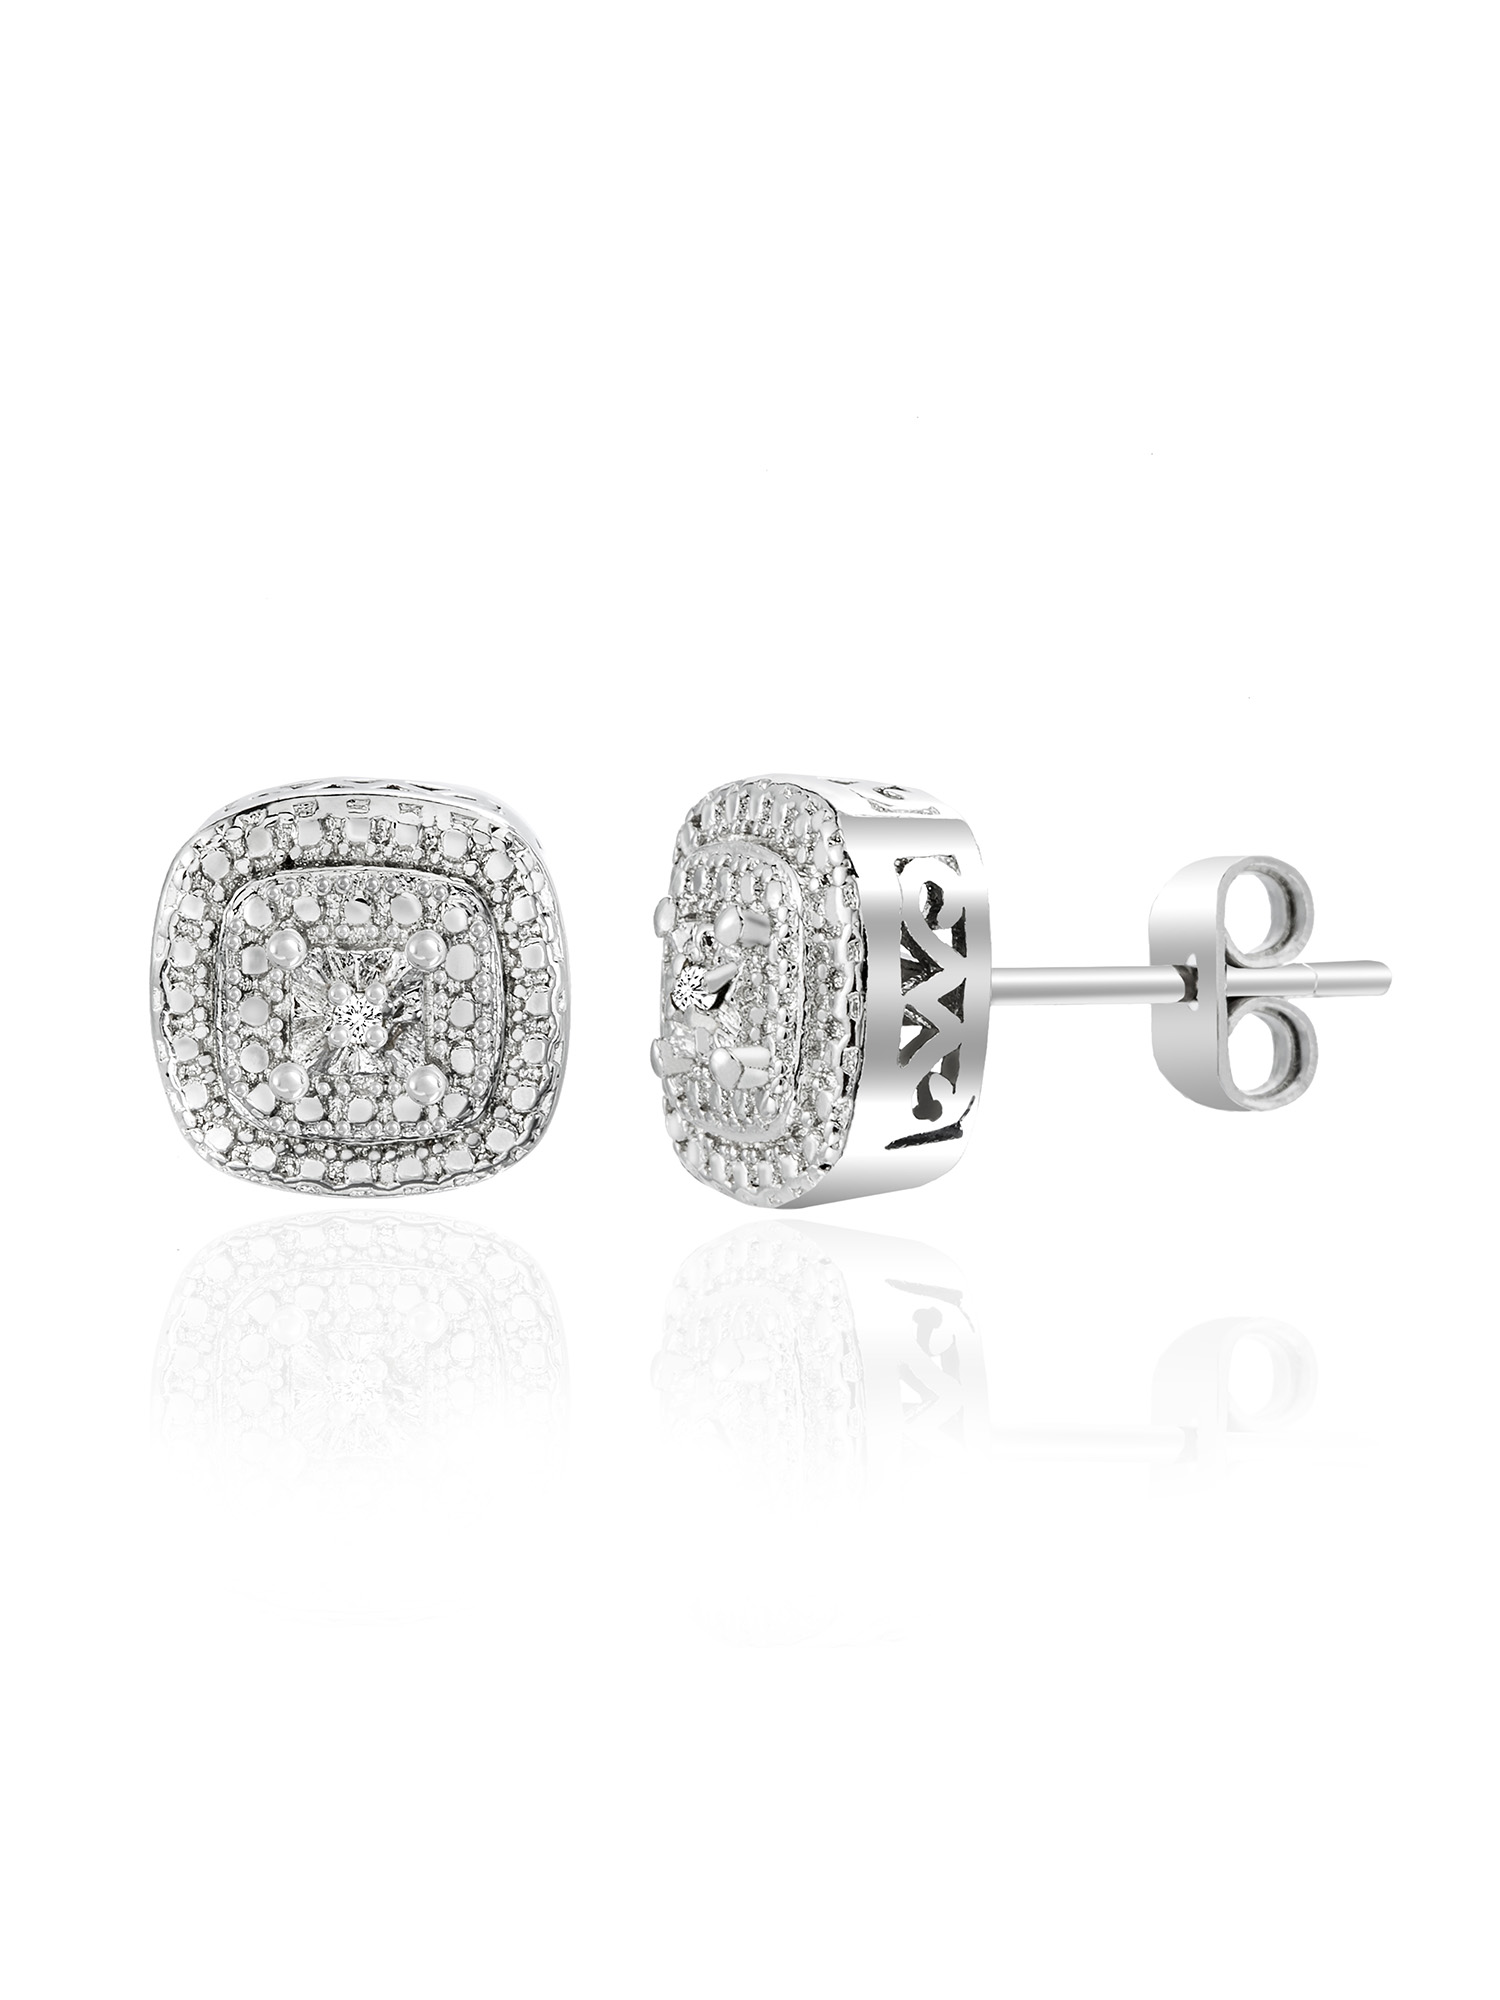 Lumineux Diamond Accent Pave Halo Square Stud Earring